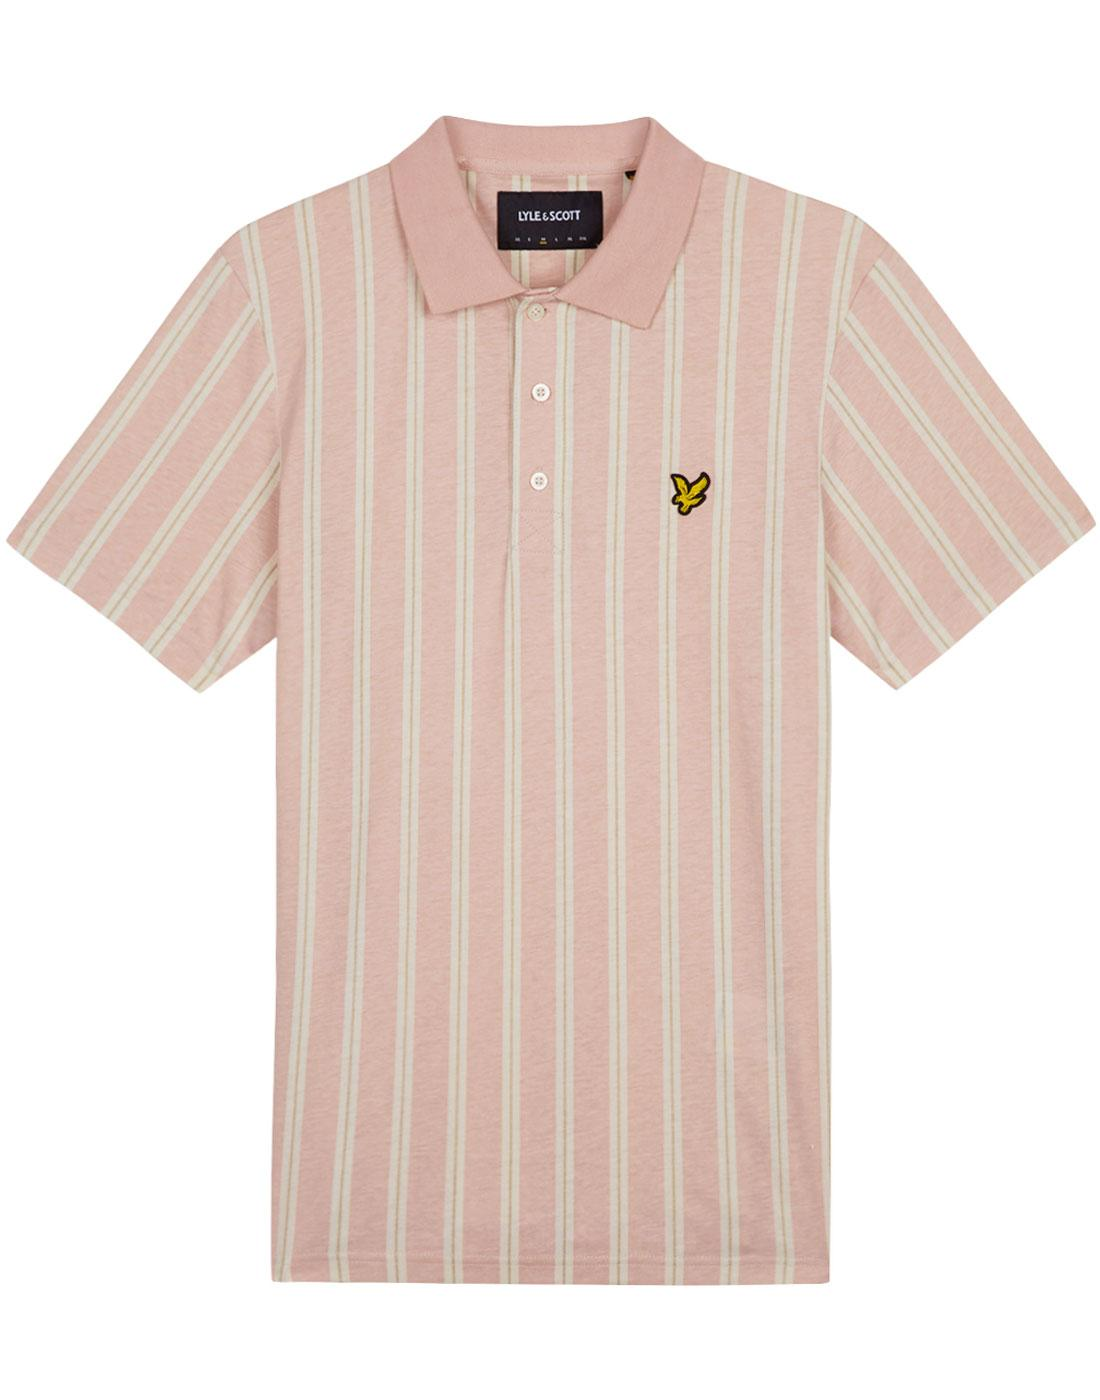 LYLE & SCOTT Mod Deckchair Stripe Polo Shirt (DP)